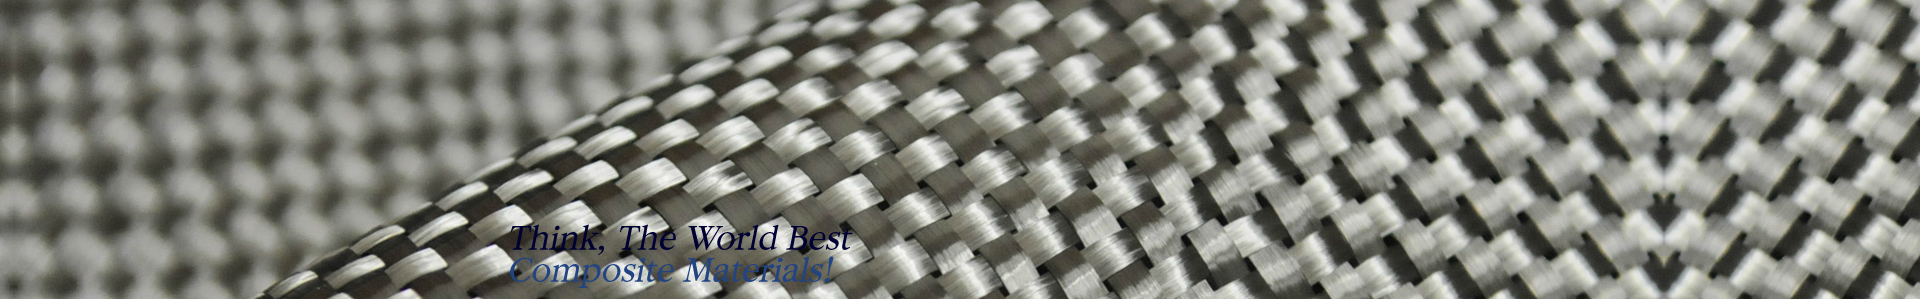 Think, The World Best Composite Materials!